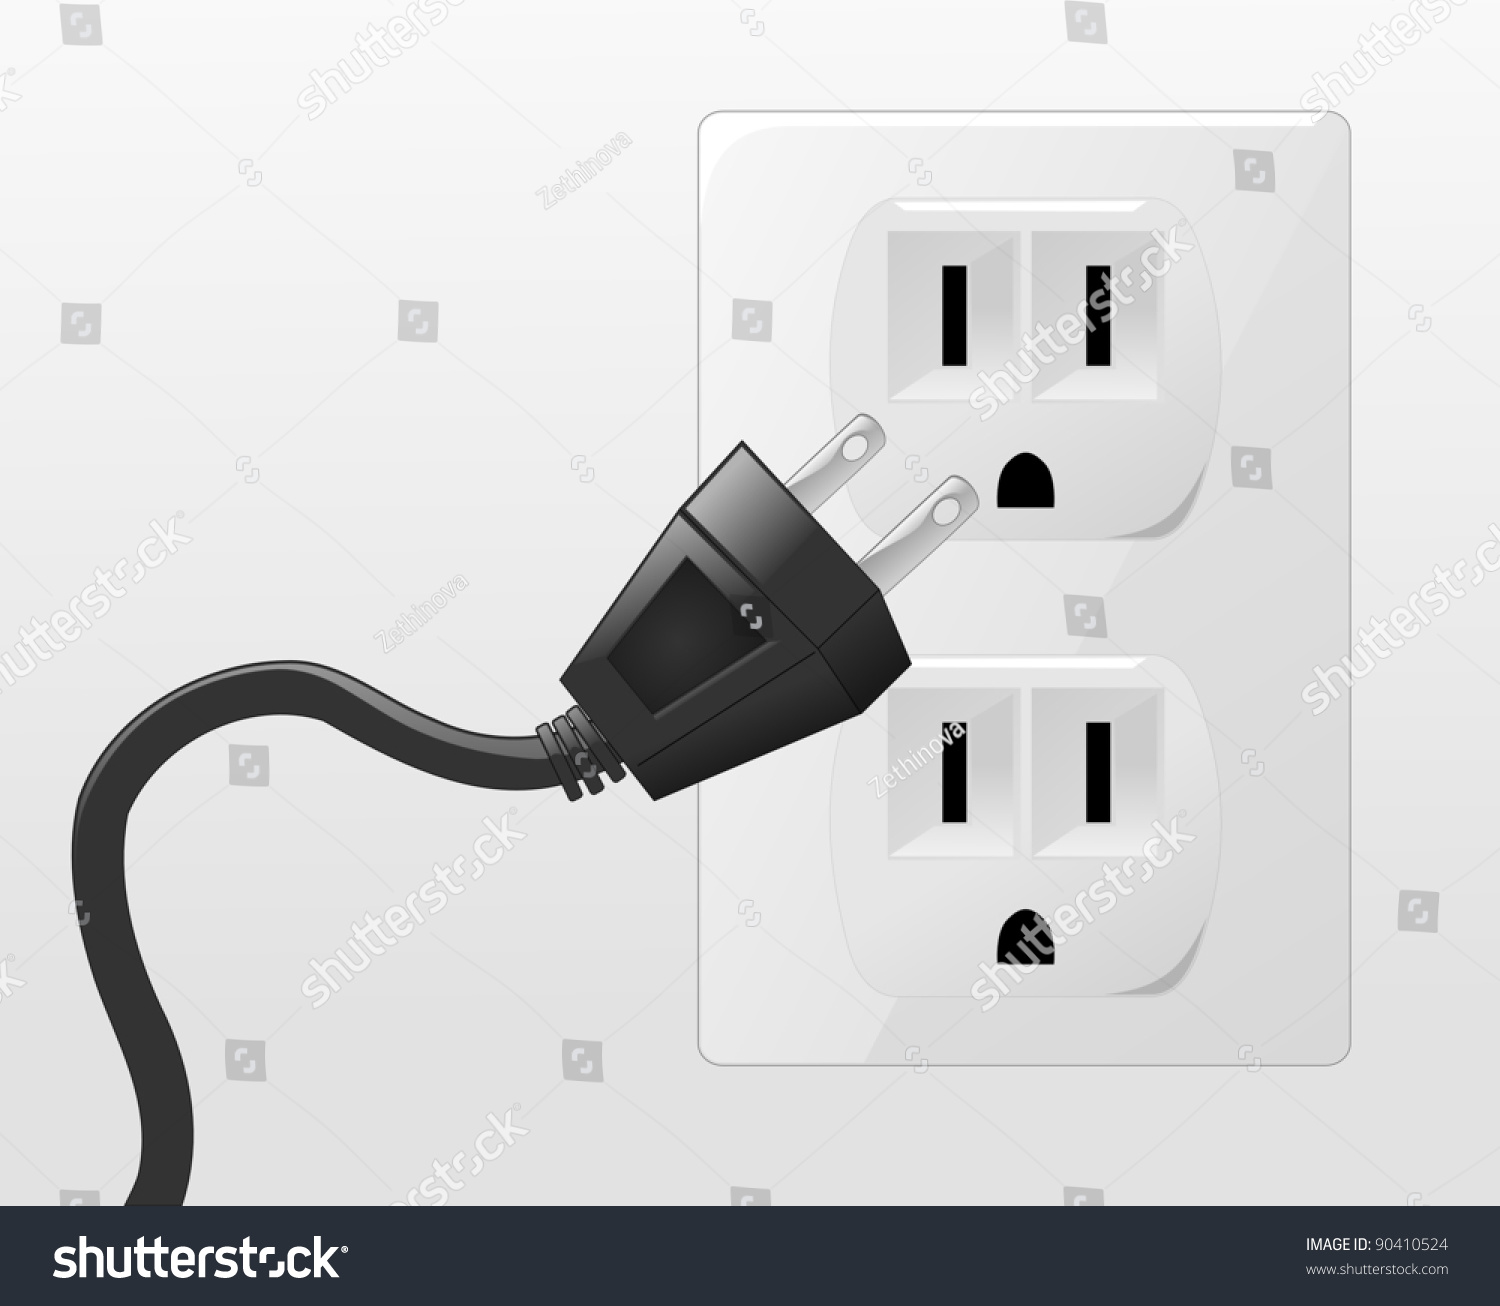 What Is Code Or  mon Rule When Securing Multiple Electrical Lines additionally Electrical Safety 101 Overloading Circuits also Powerline Home  work Homeplug as well 1g Uk Plug Socket Black likewise 227. on outlet wiring